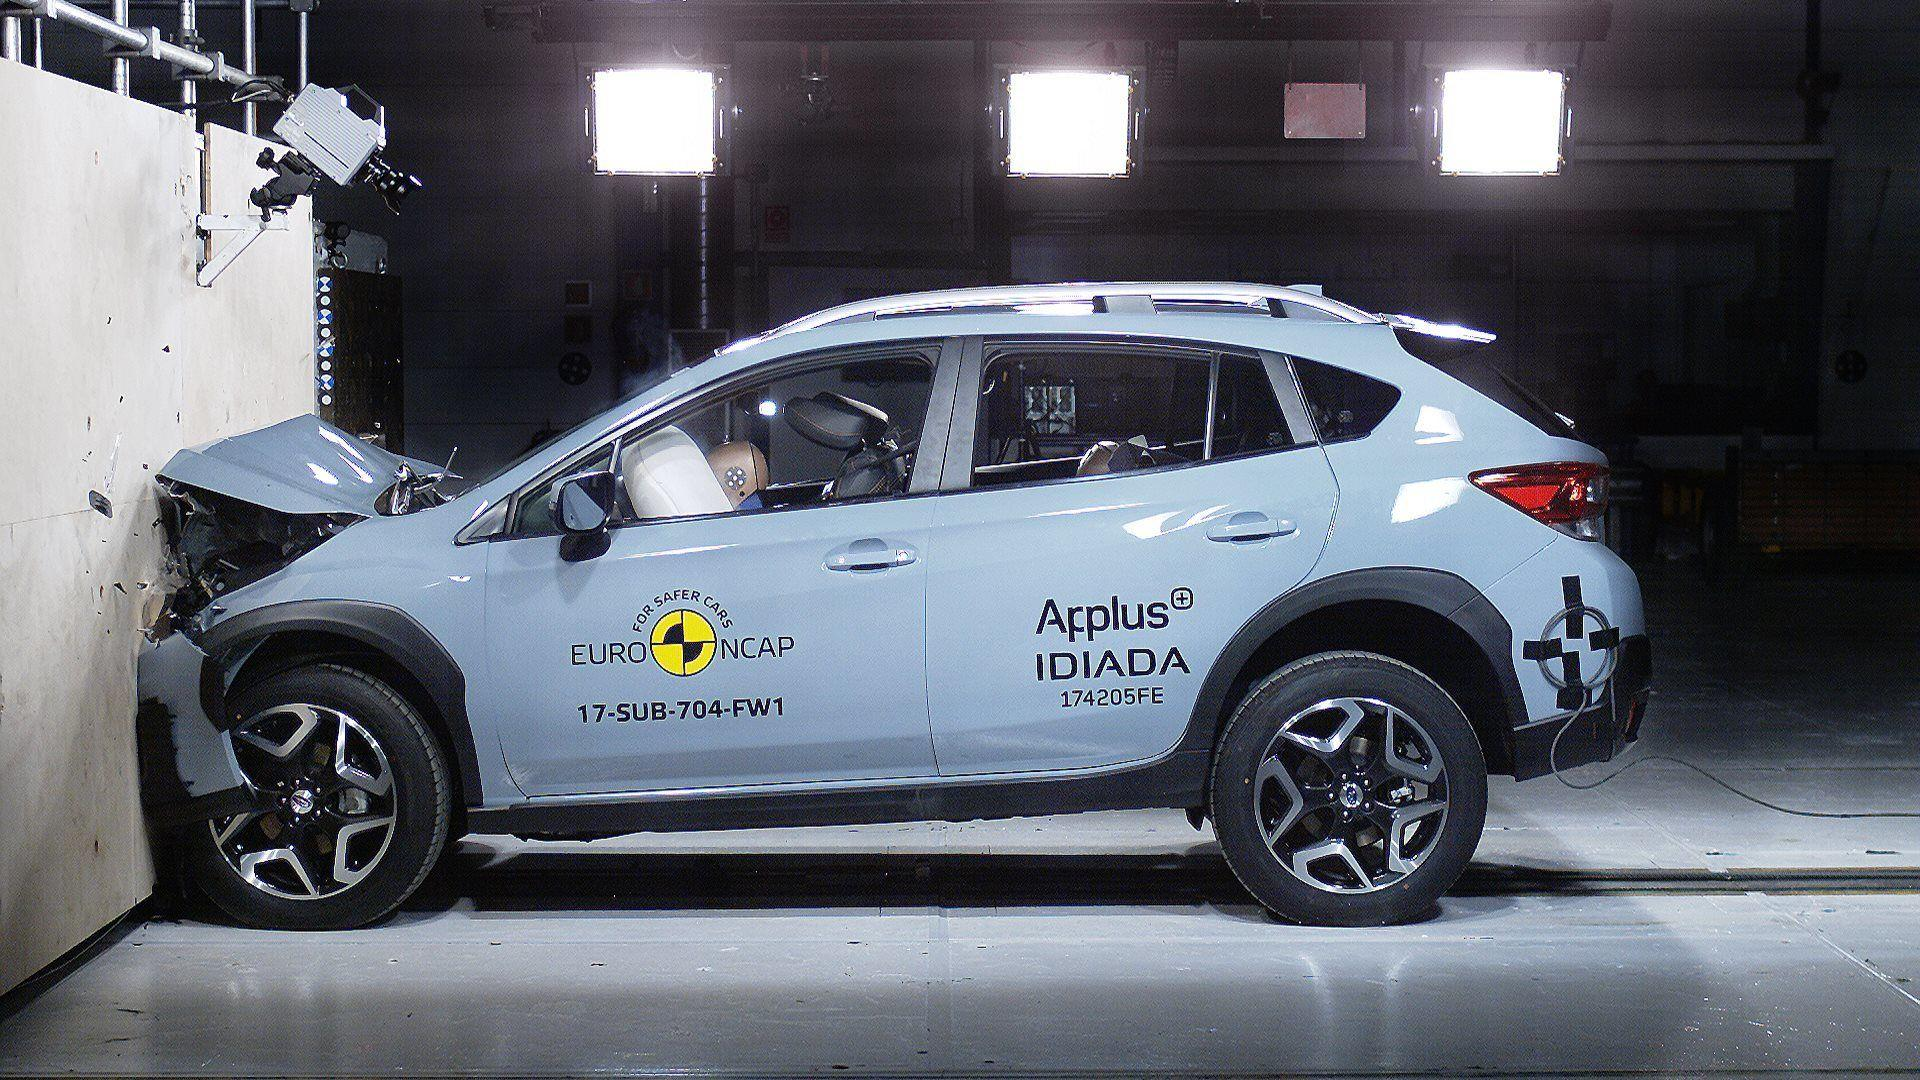 THE ALL-NEW SUBARU XV AND IMPREZA AWARDED MAXIMUM FIVE STAR RATING IN 2017 EURO NCAP SAFETY TEST